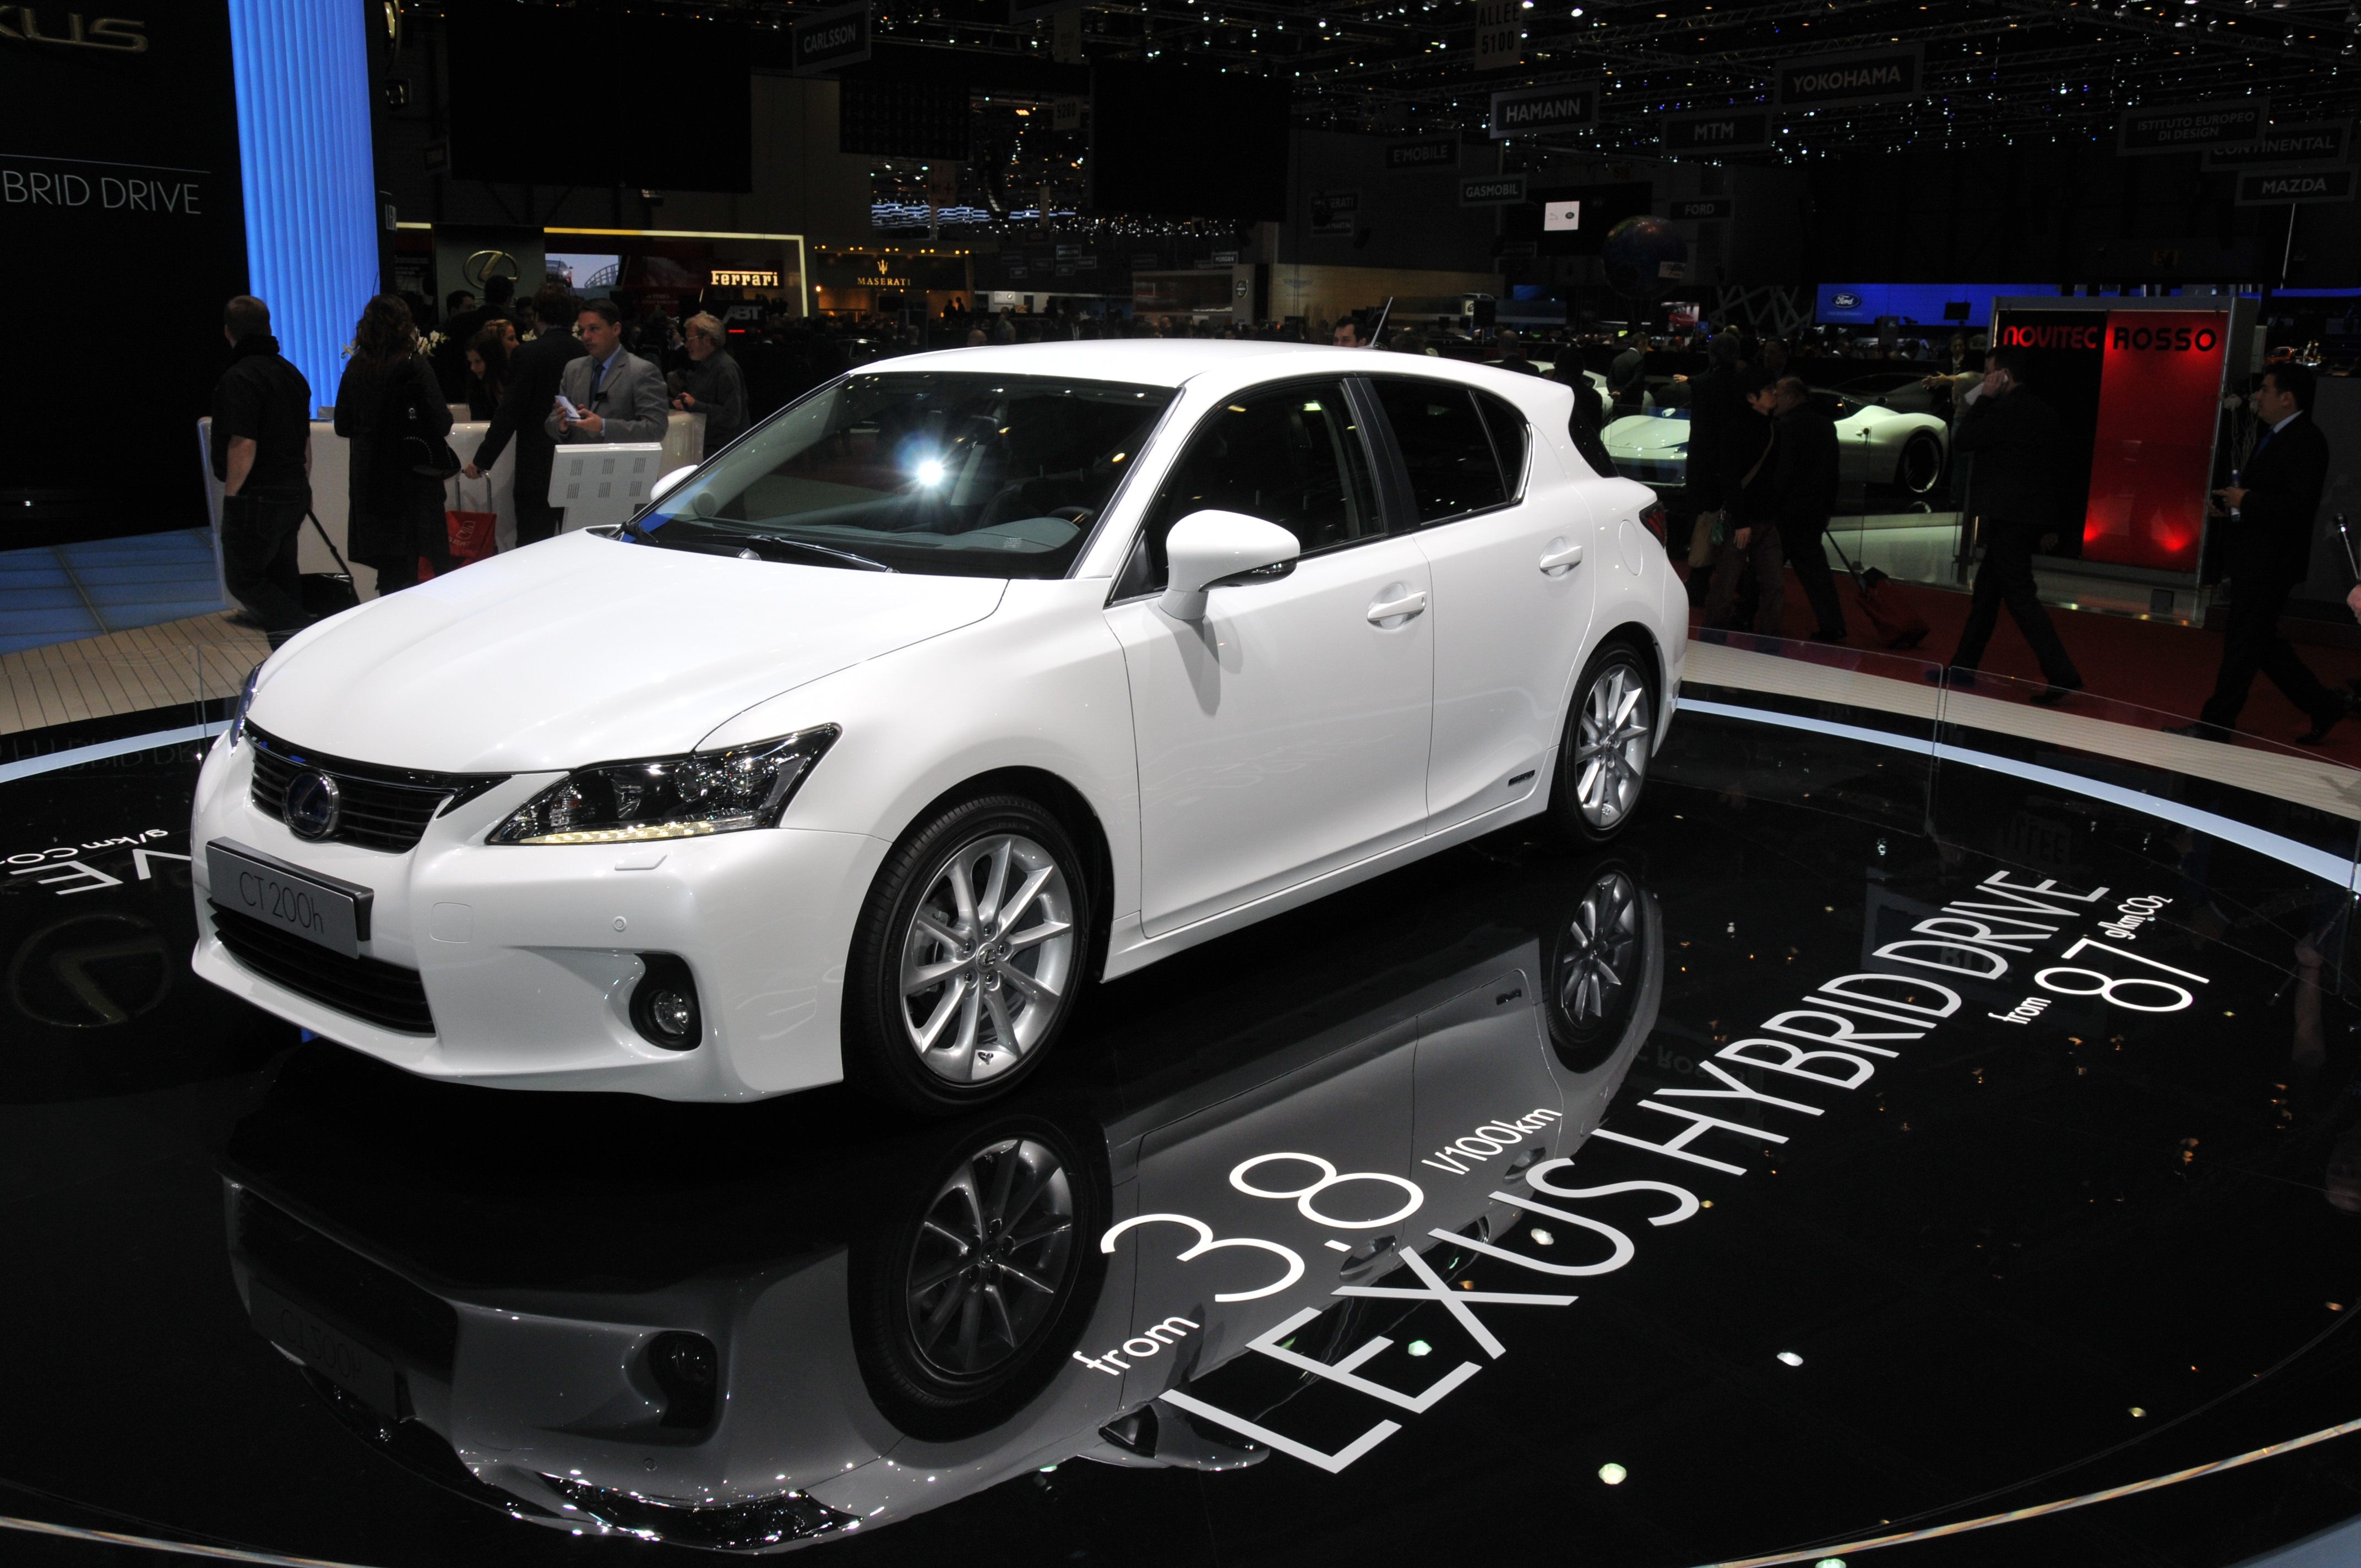 nimble stylish and ct the lexus thrifty family car